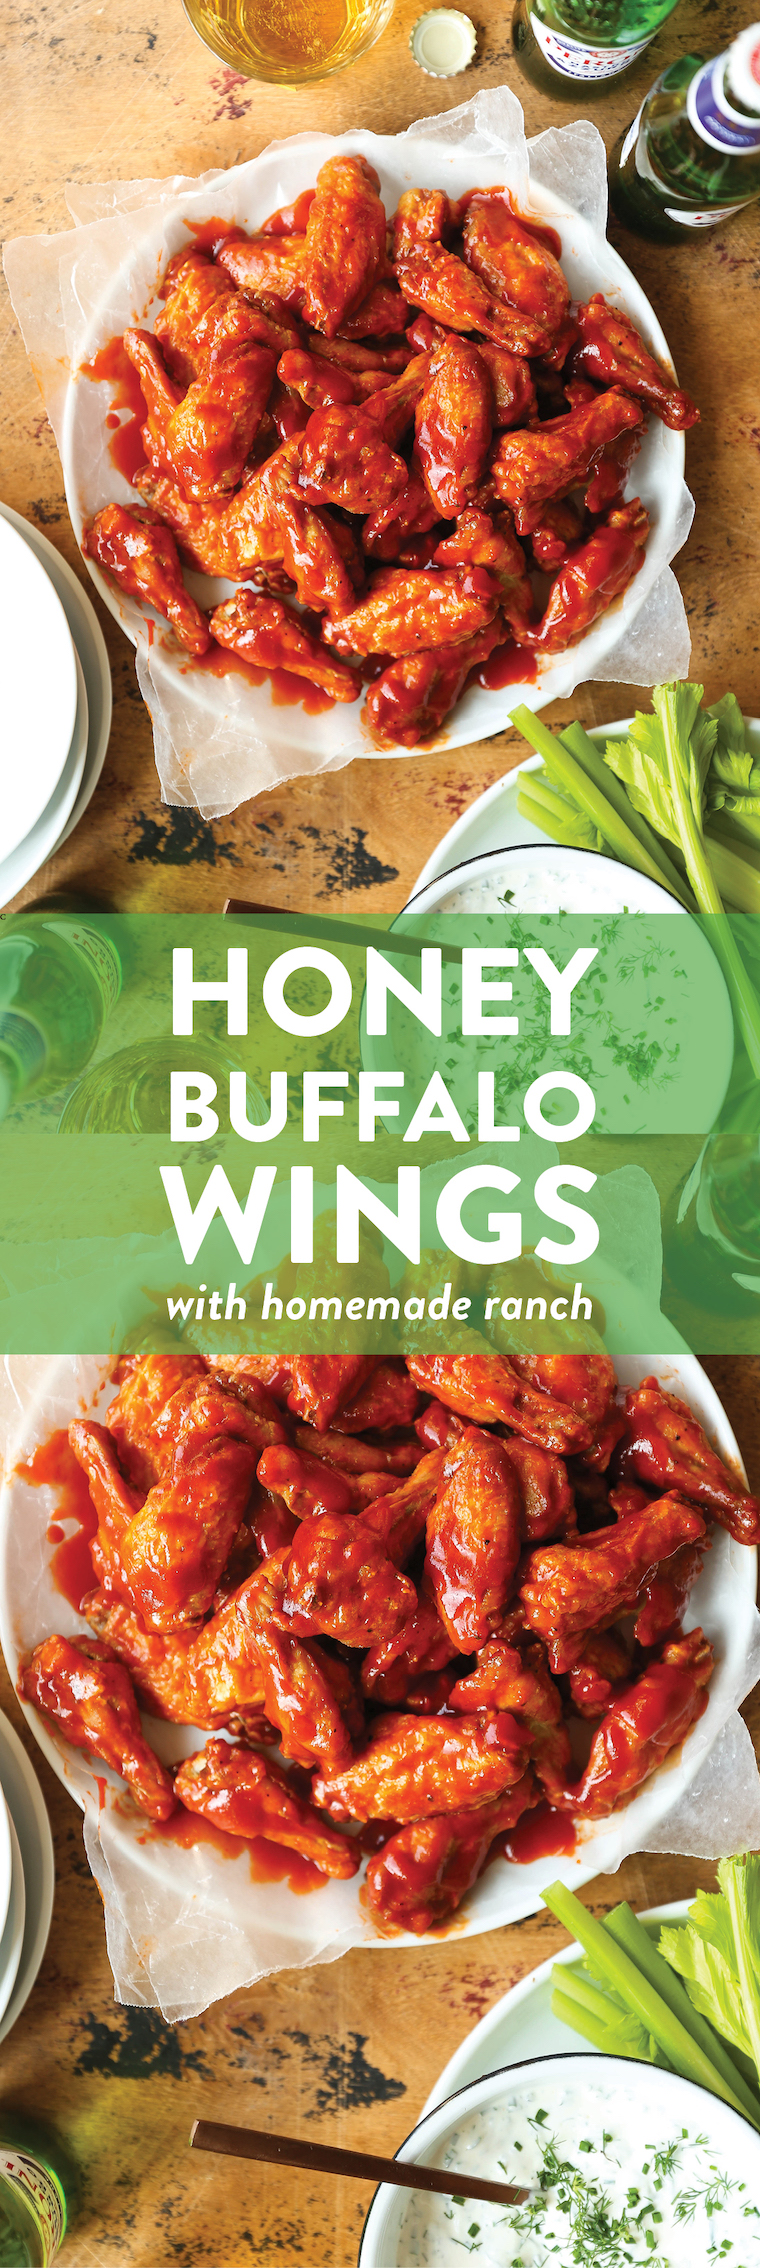 Honey Buffalo Wings with Homemade Ranch - So crispy, so sticky, so finger-licking amazing!!! Plus, the homemade Ranch? MIND BLOWN. Pass the beer, please!!!